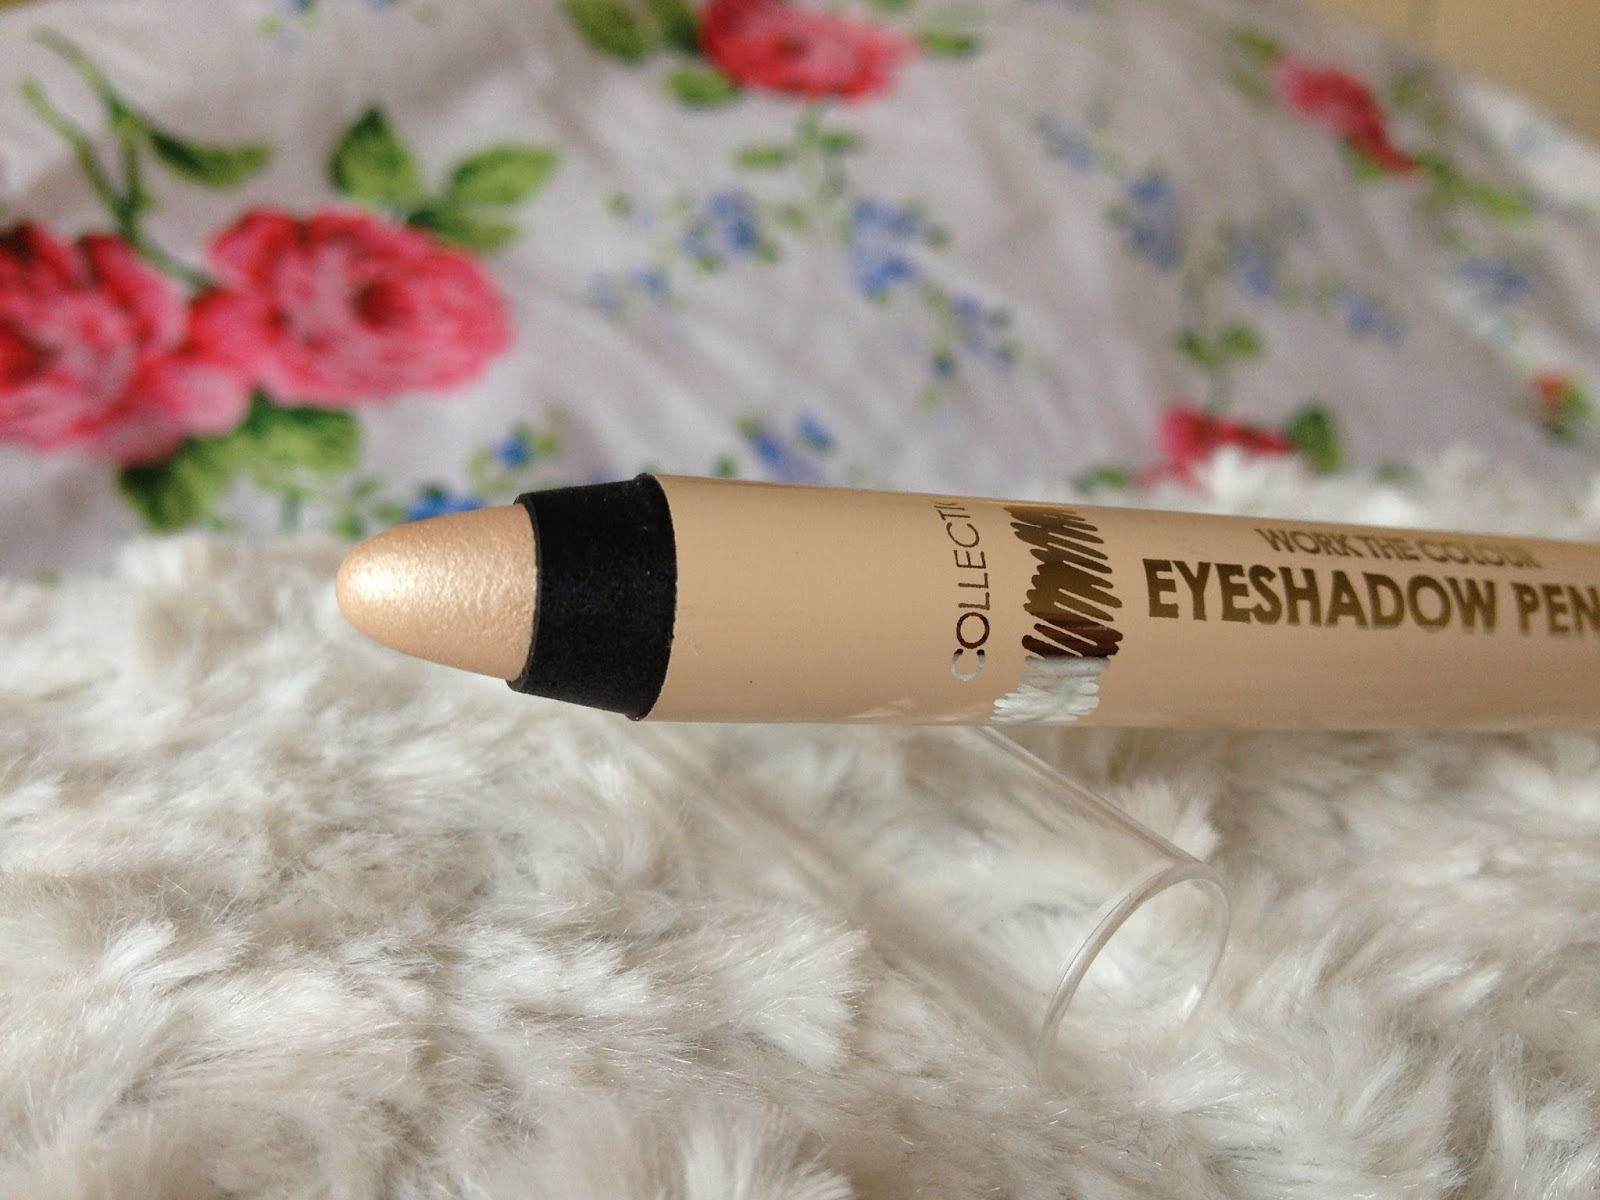 UK lifestyle blogger UK beauty blogger review swatch collection work the colour eyeshadow pencil vanilla sky